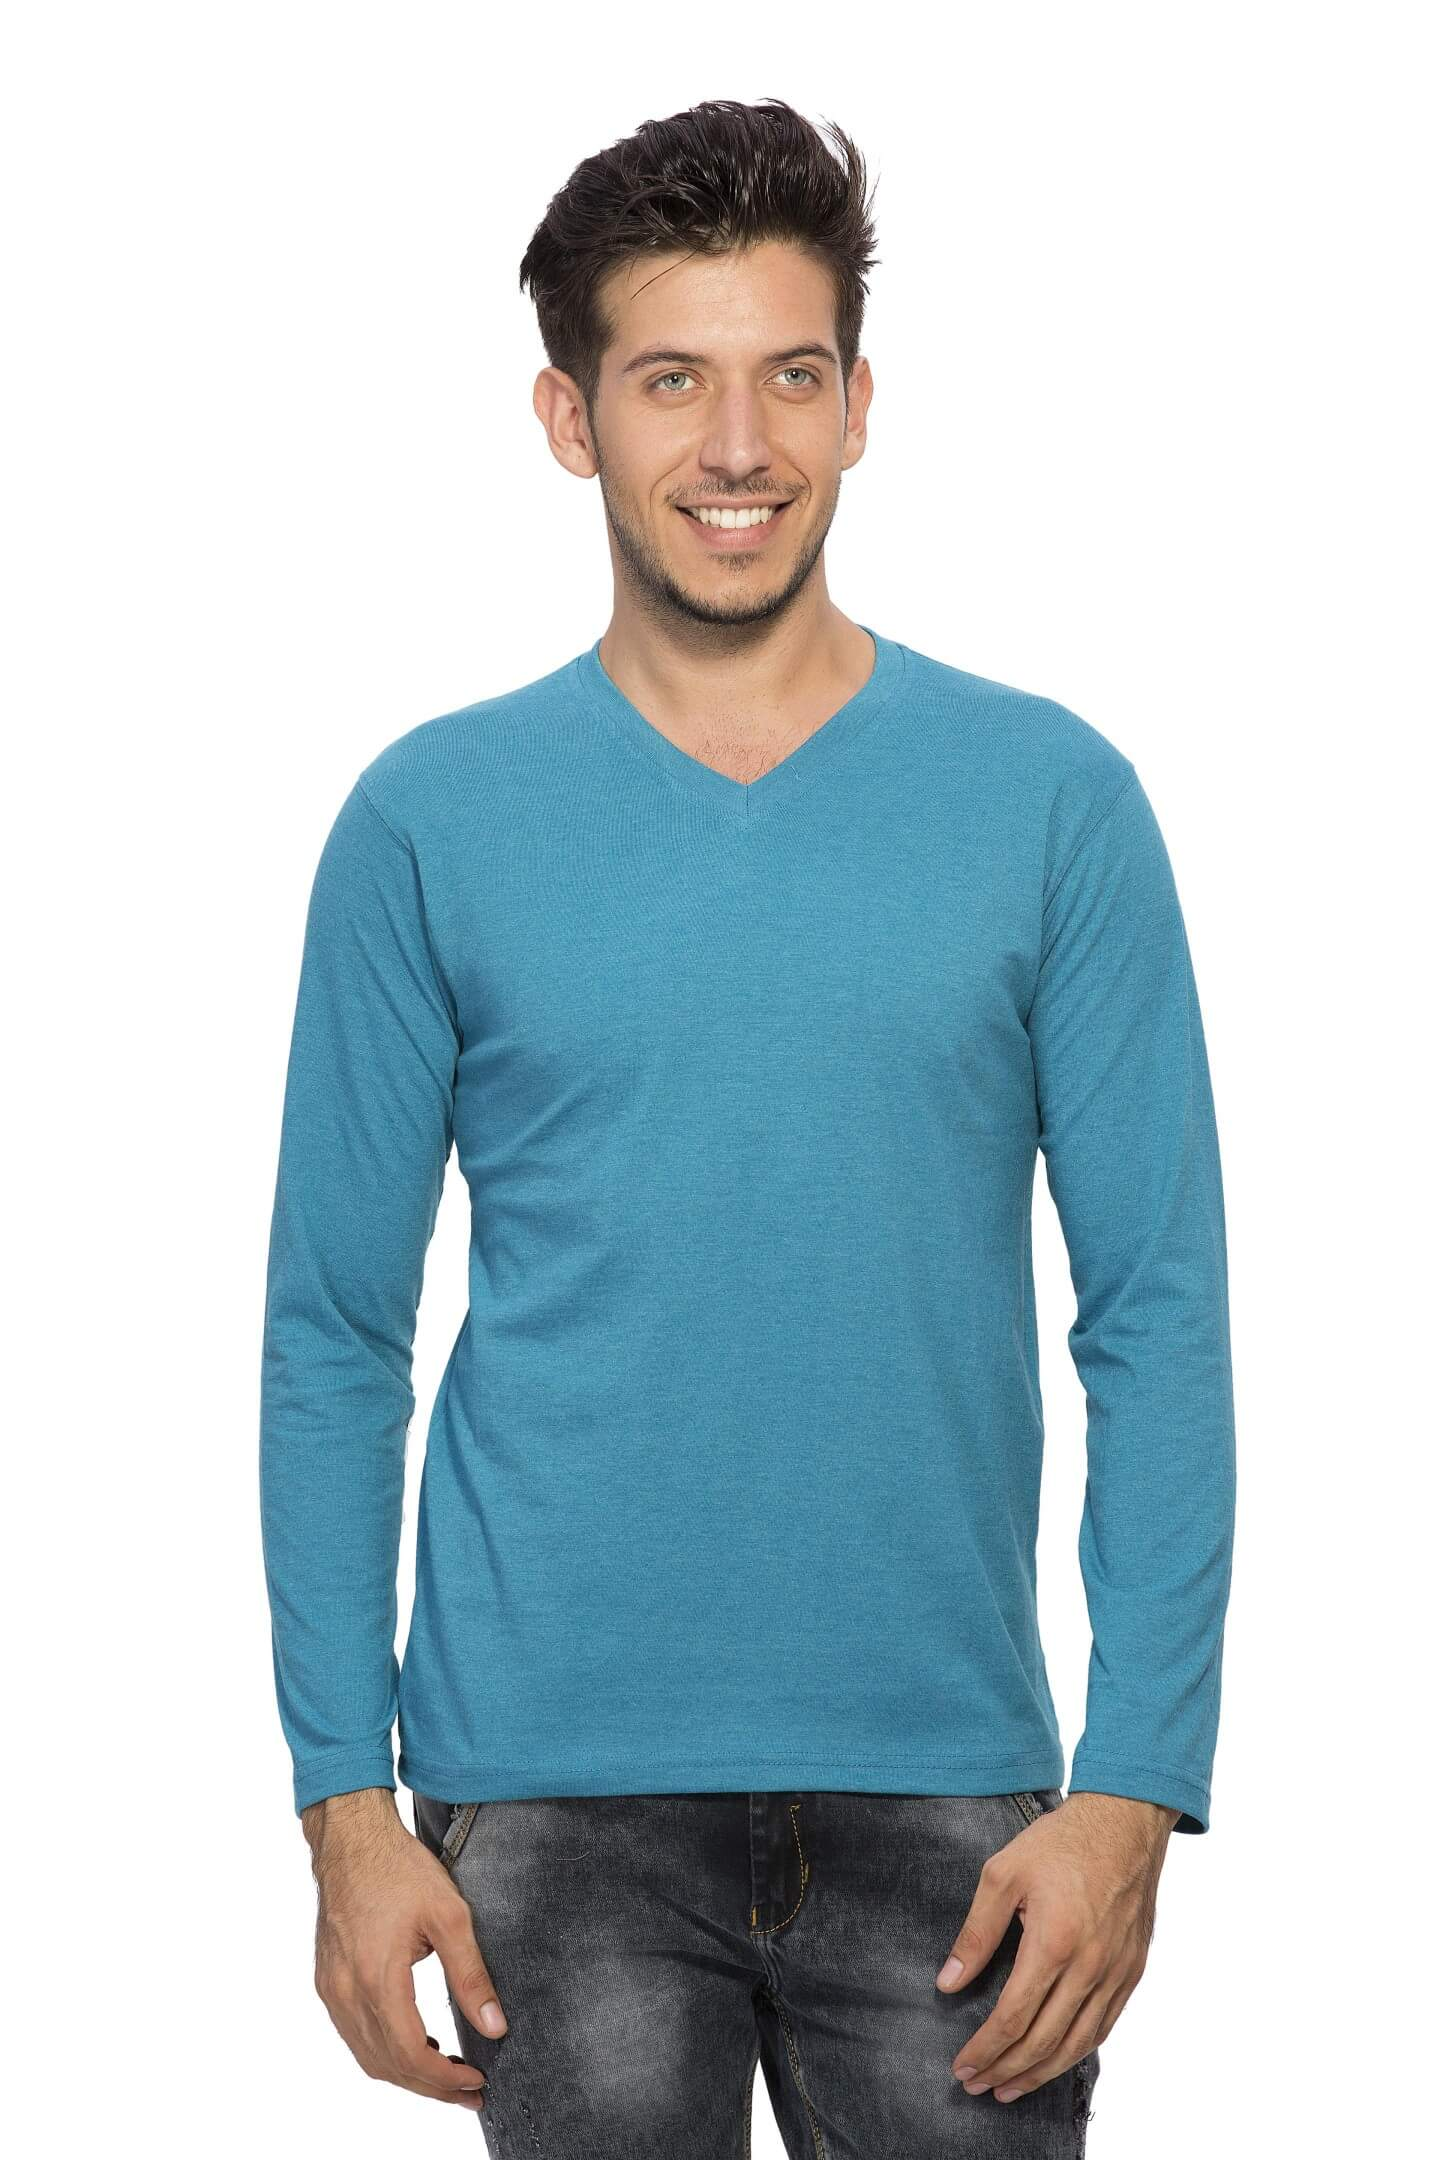 e26713329937 Buy Men Plain Full Sleeve T Shirt products online at low prices in ...